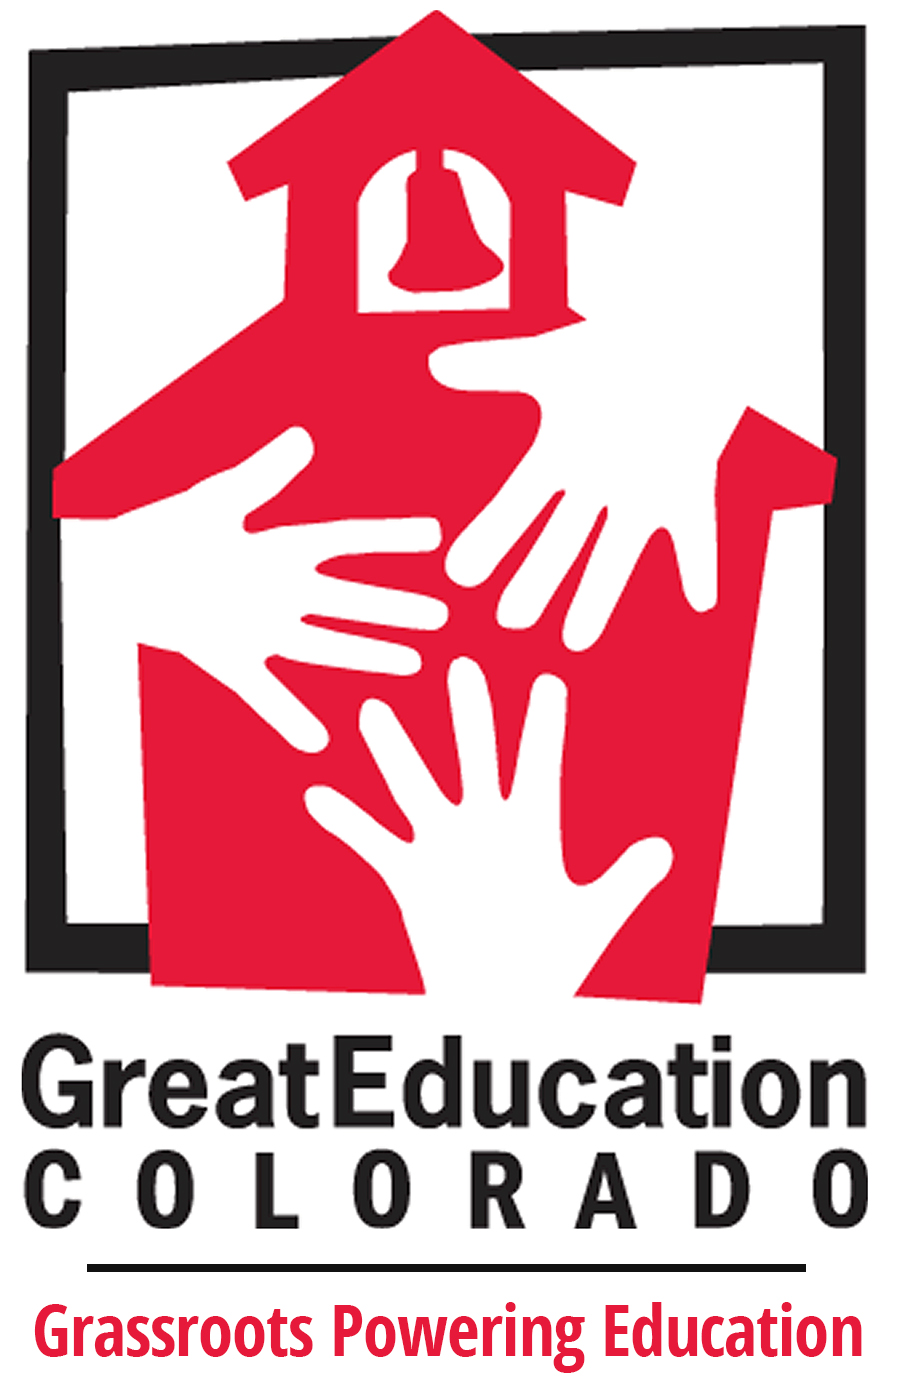 Great Education Colorado logo